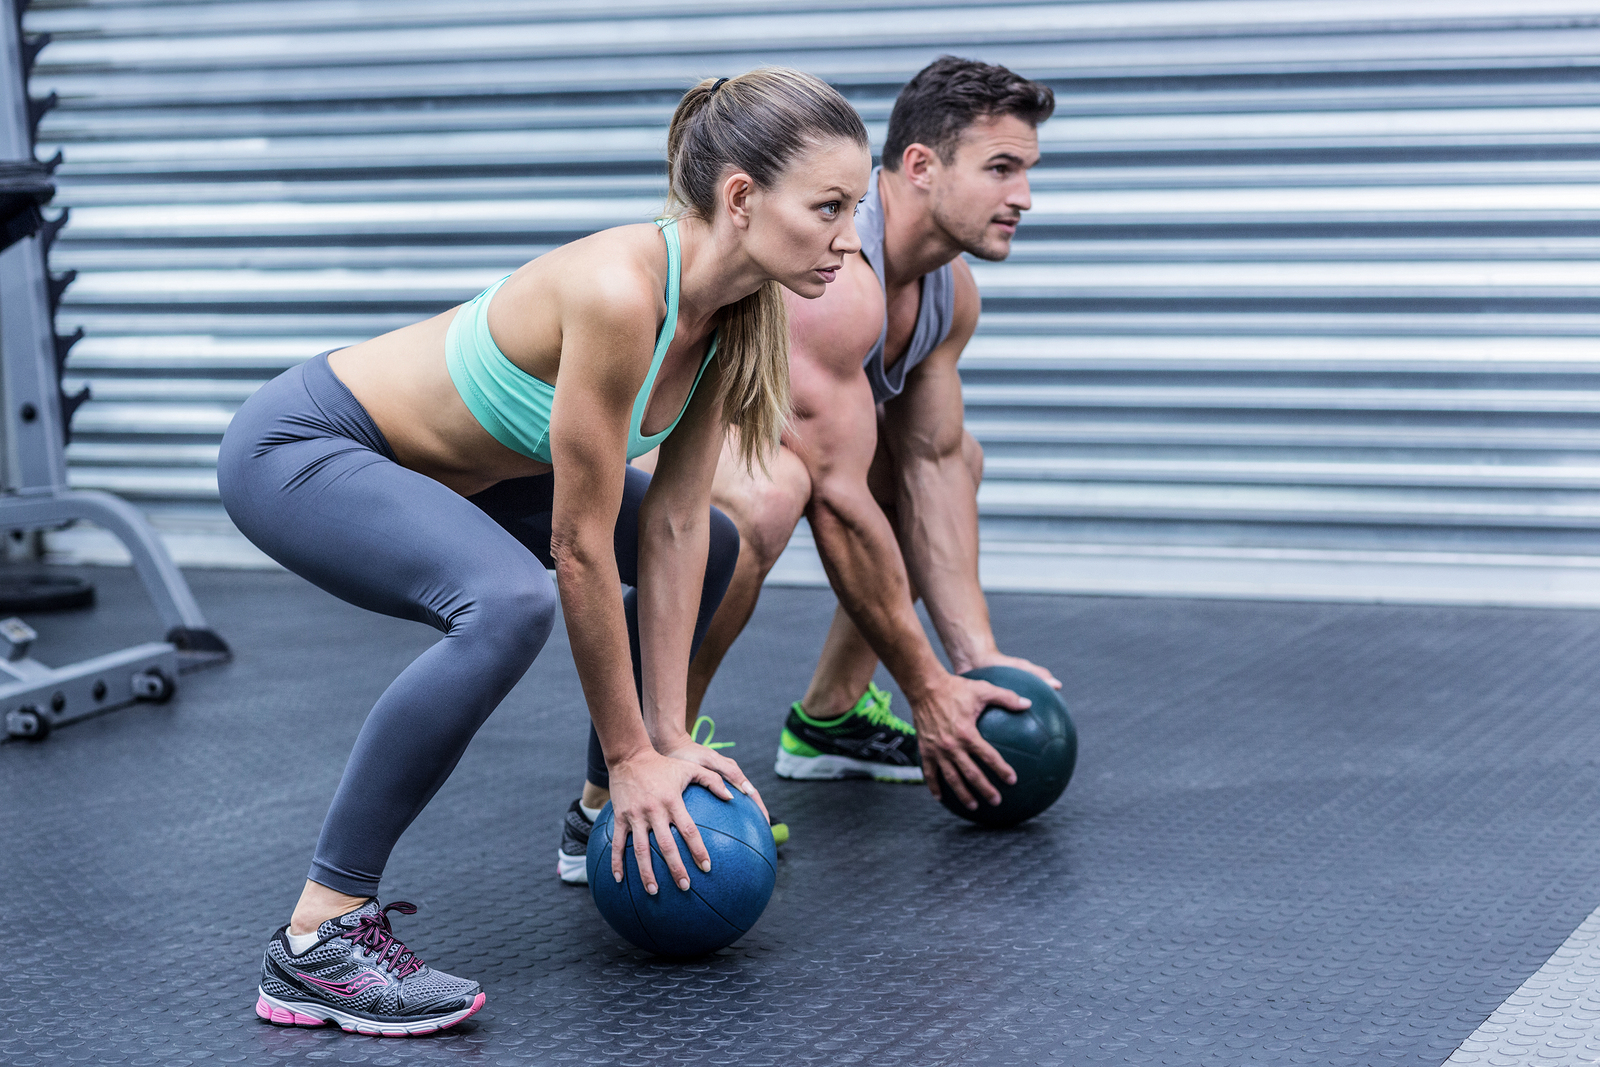 How To Level-Up Your Relationship By Training Together forecasting